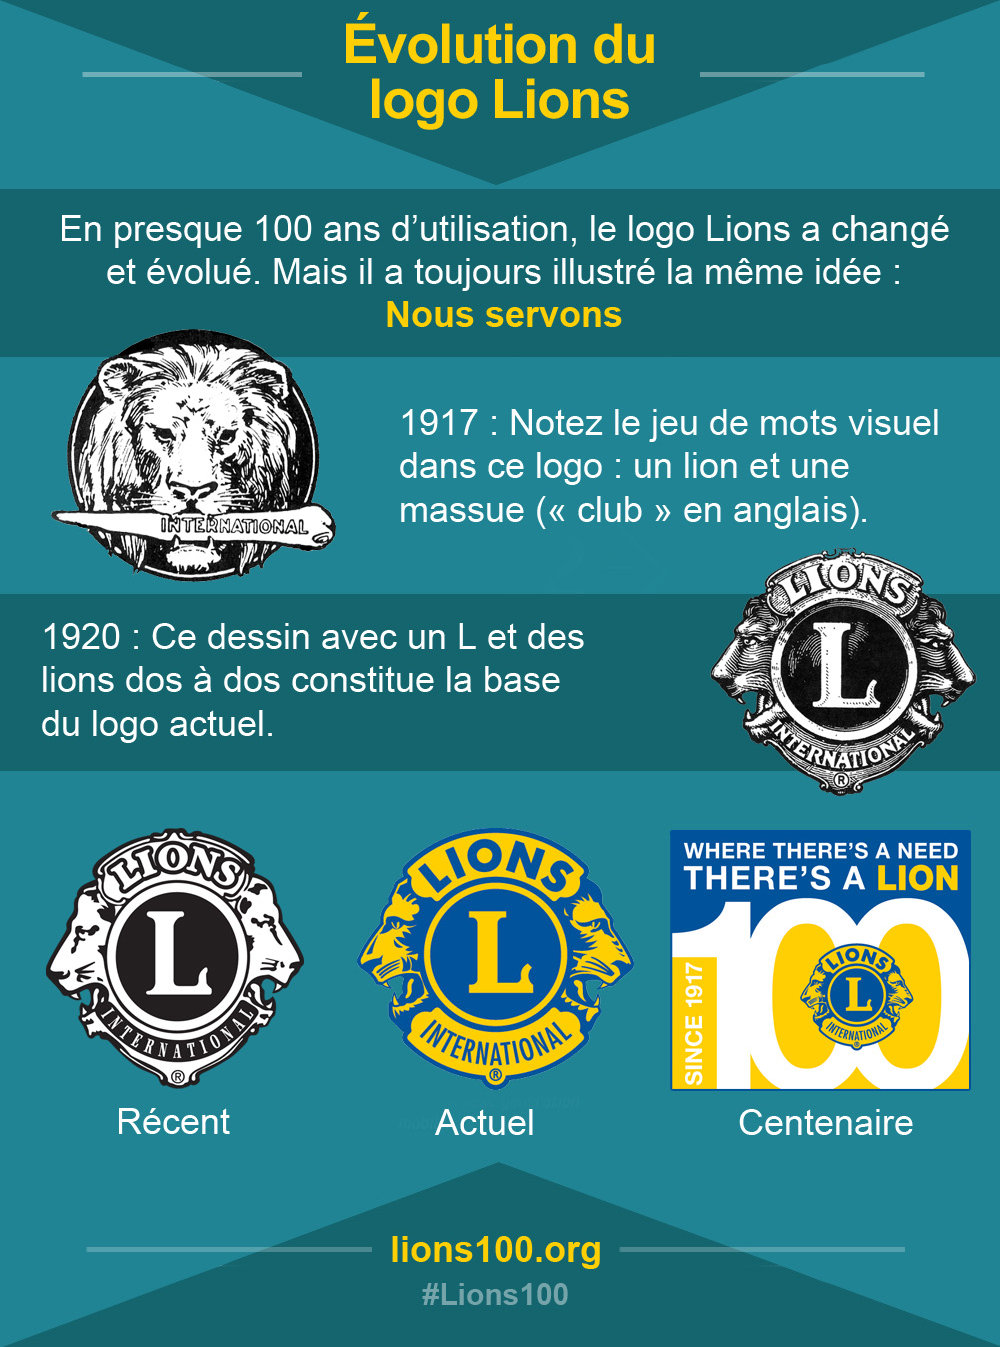 logo-refresh-infographic.jpg